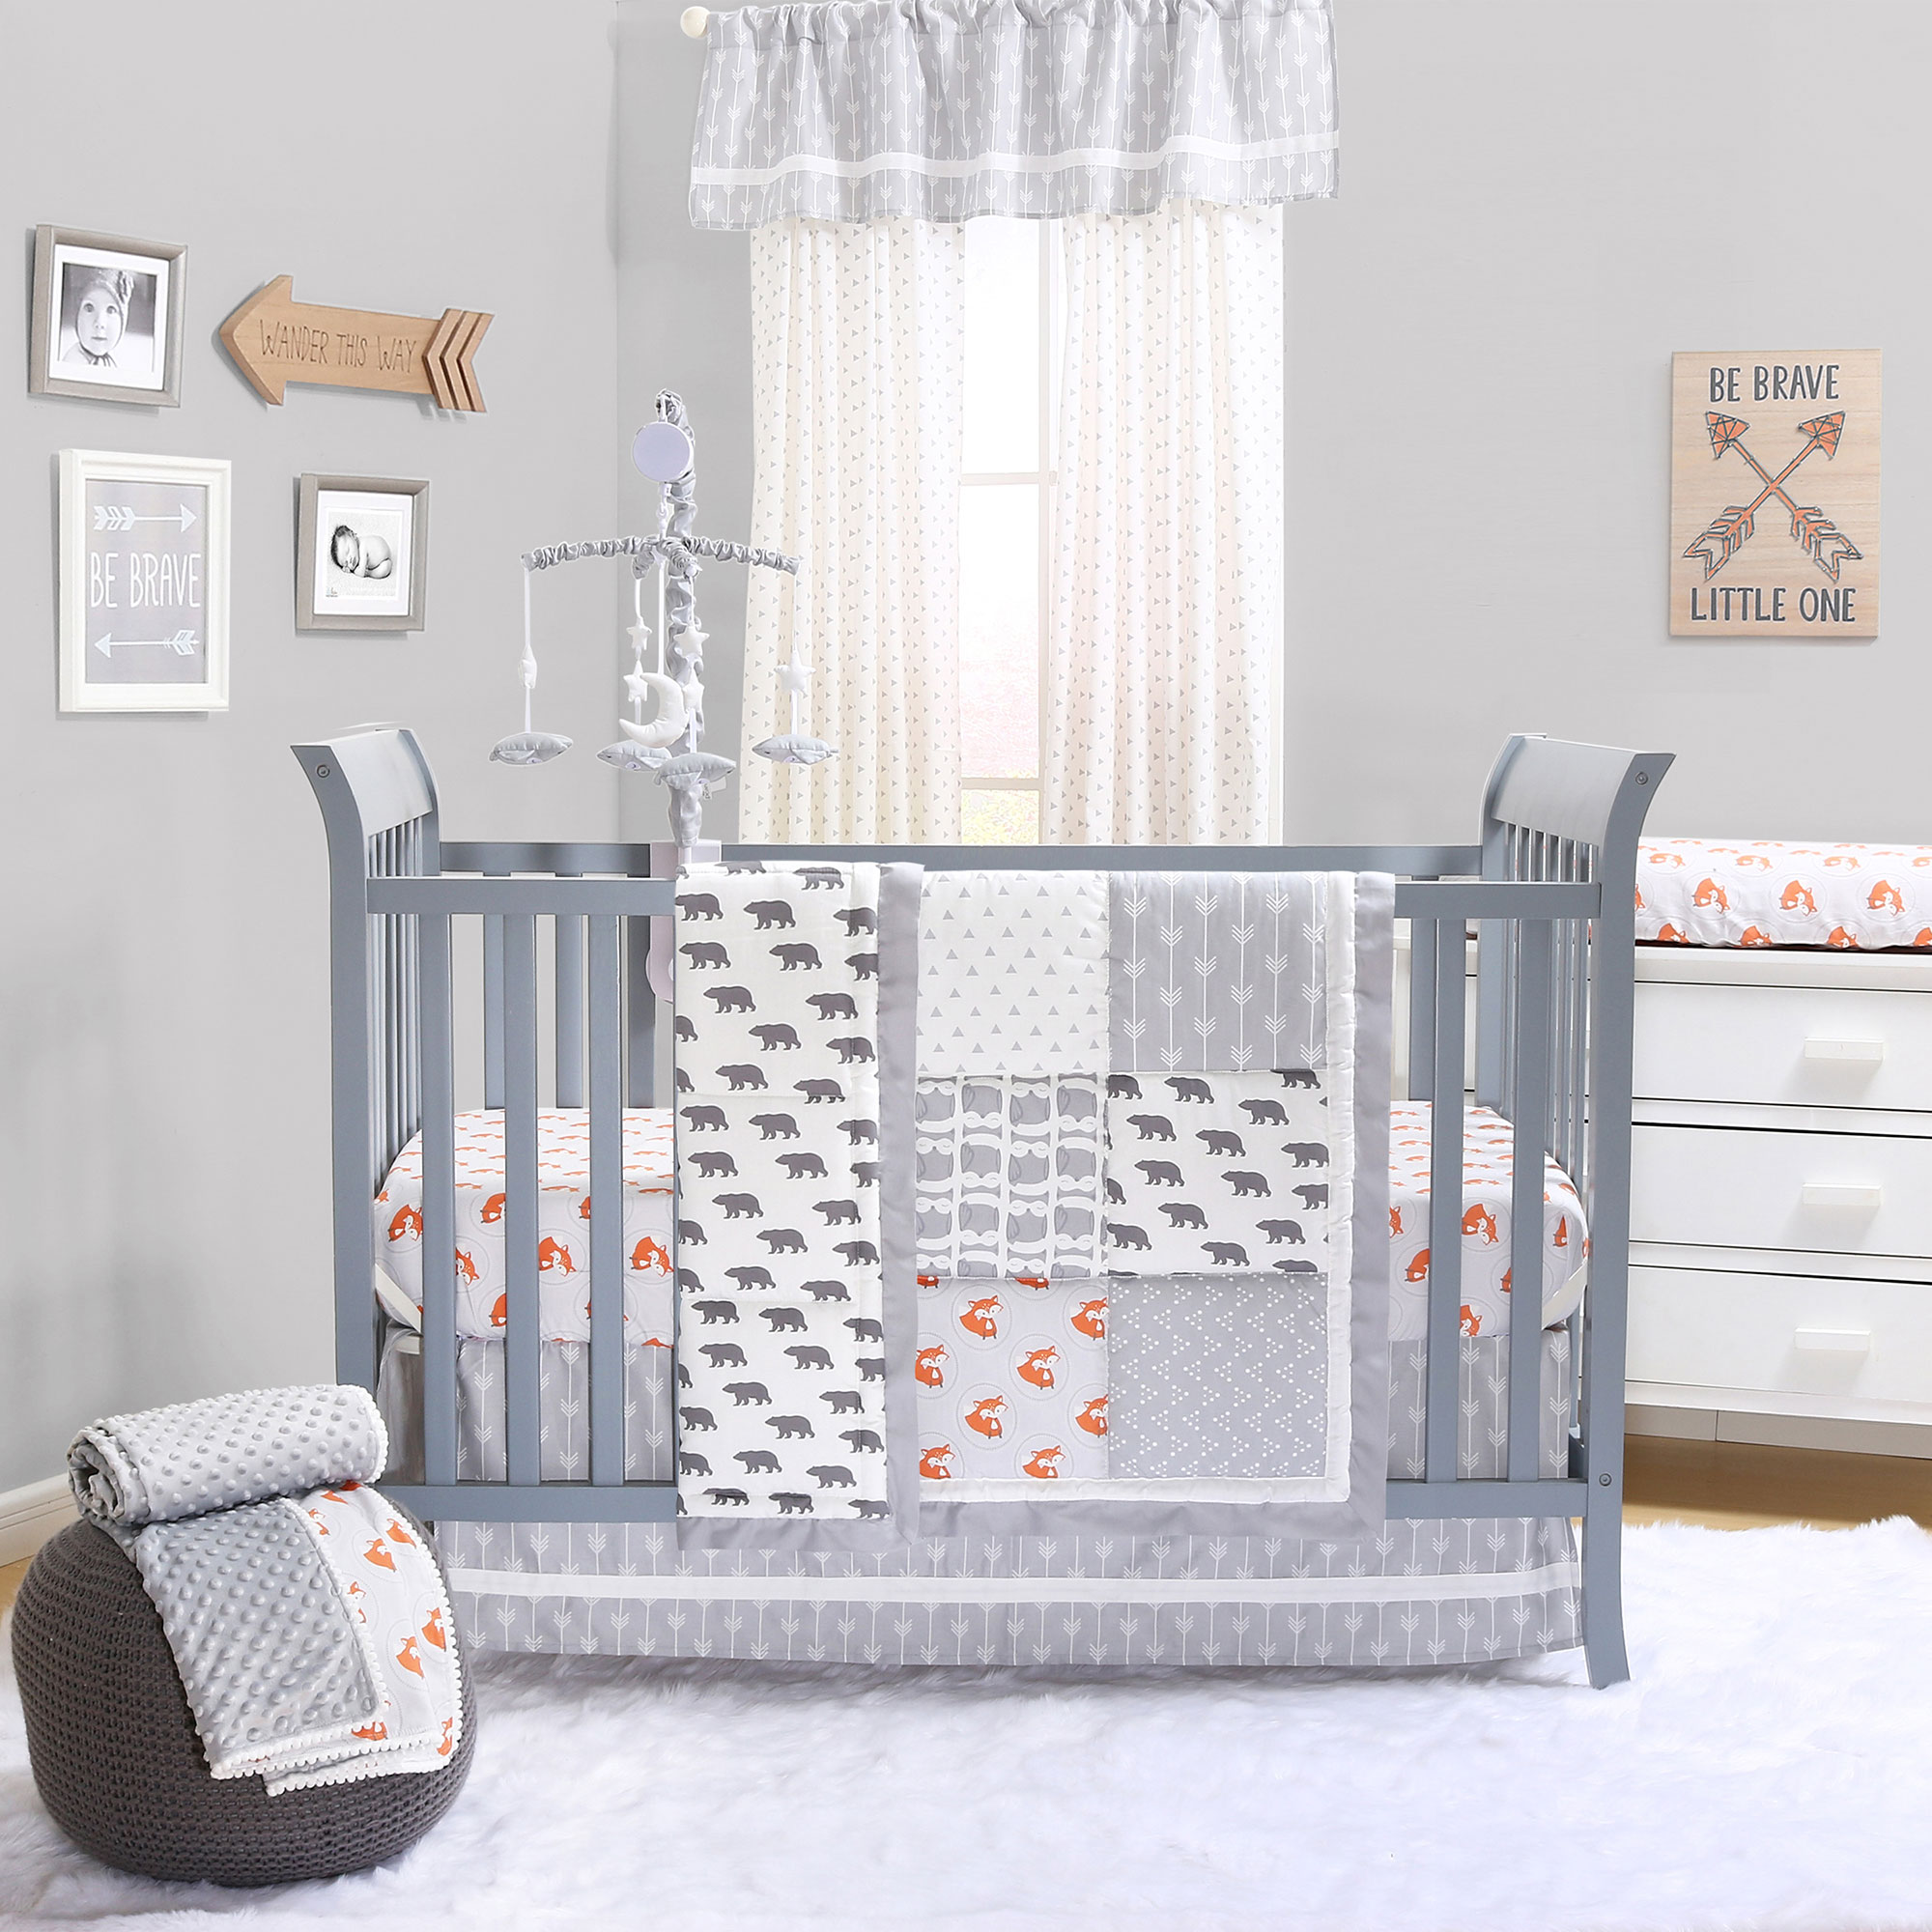 Grey Woodland Bear and Fox Baby Boy Crib Bedding - 11 Piece Sleep Essentials Set